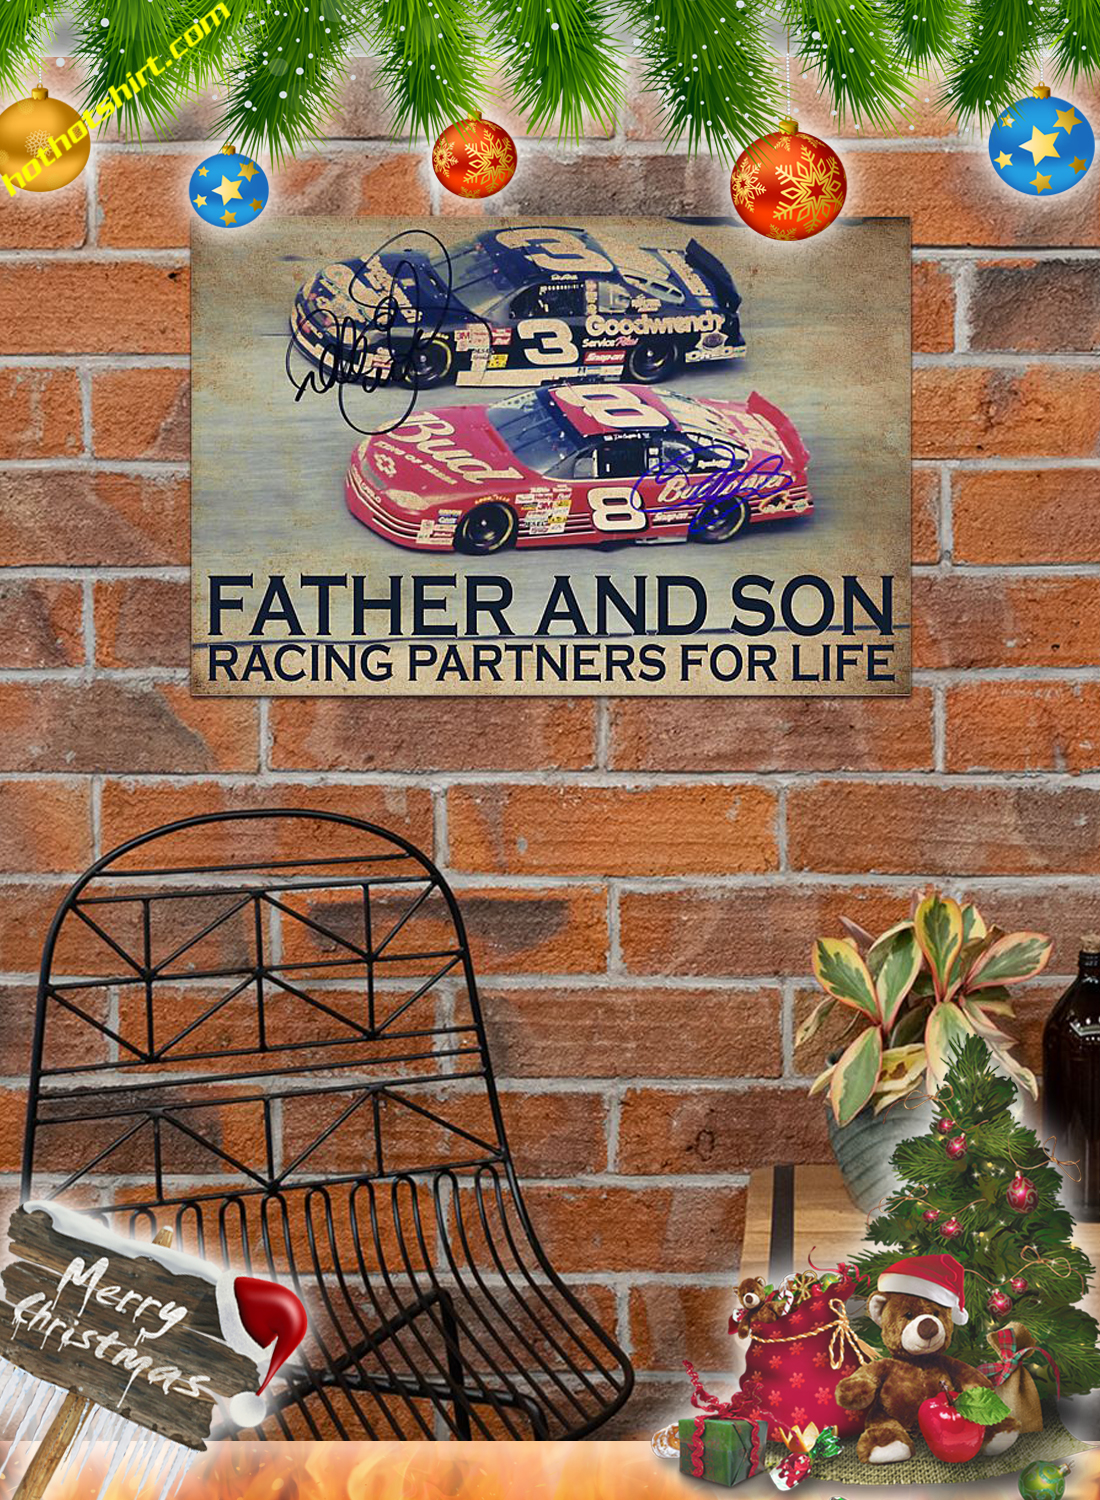 Father and son racing partners for life poster 2